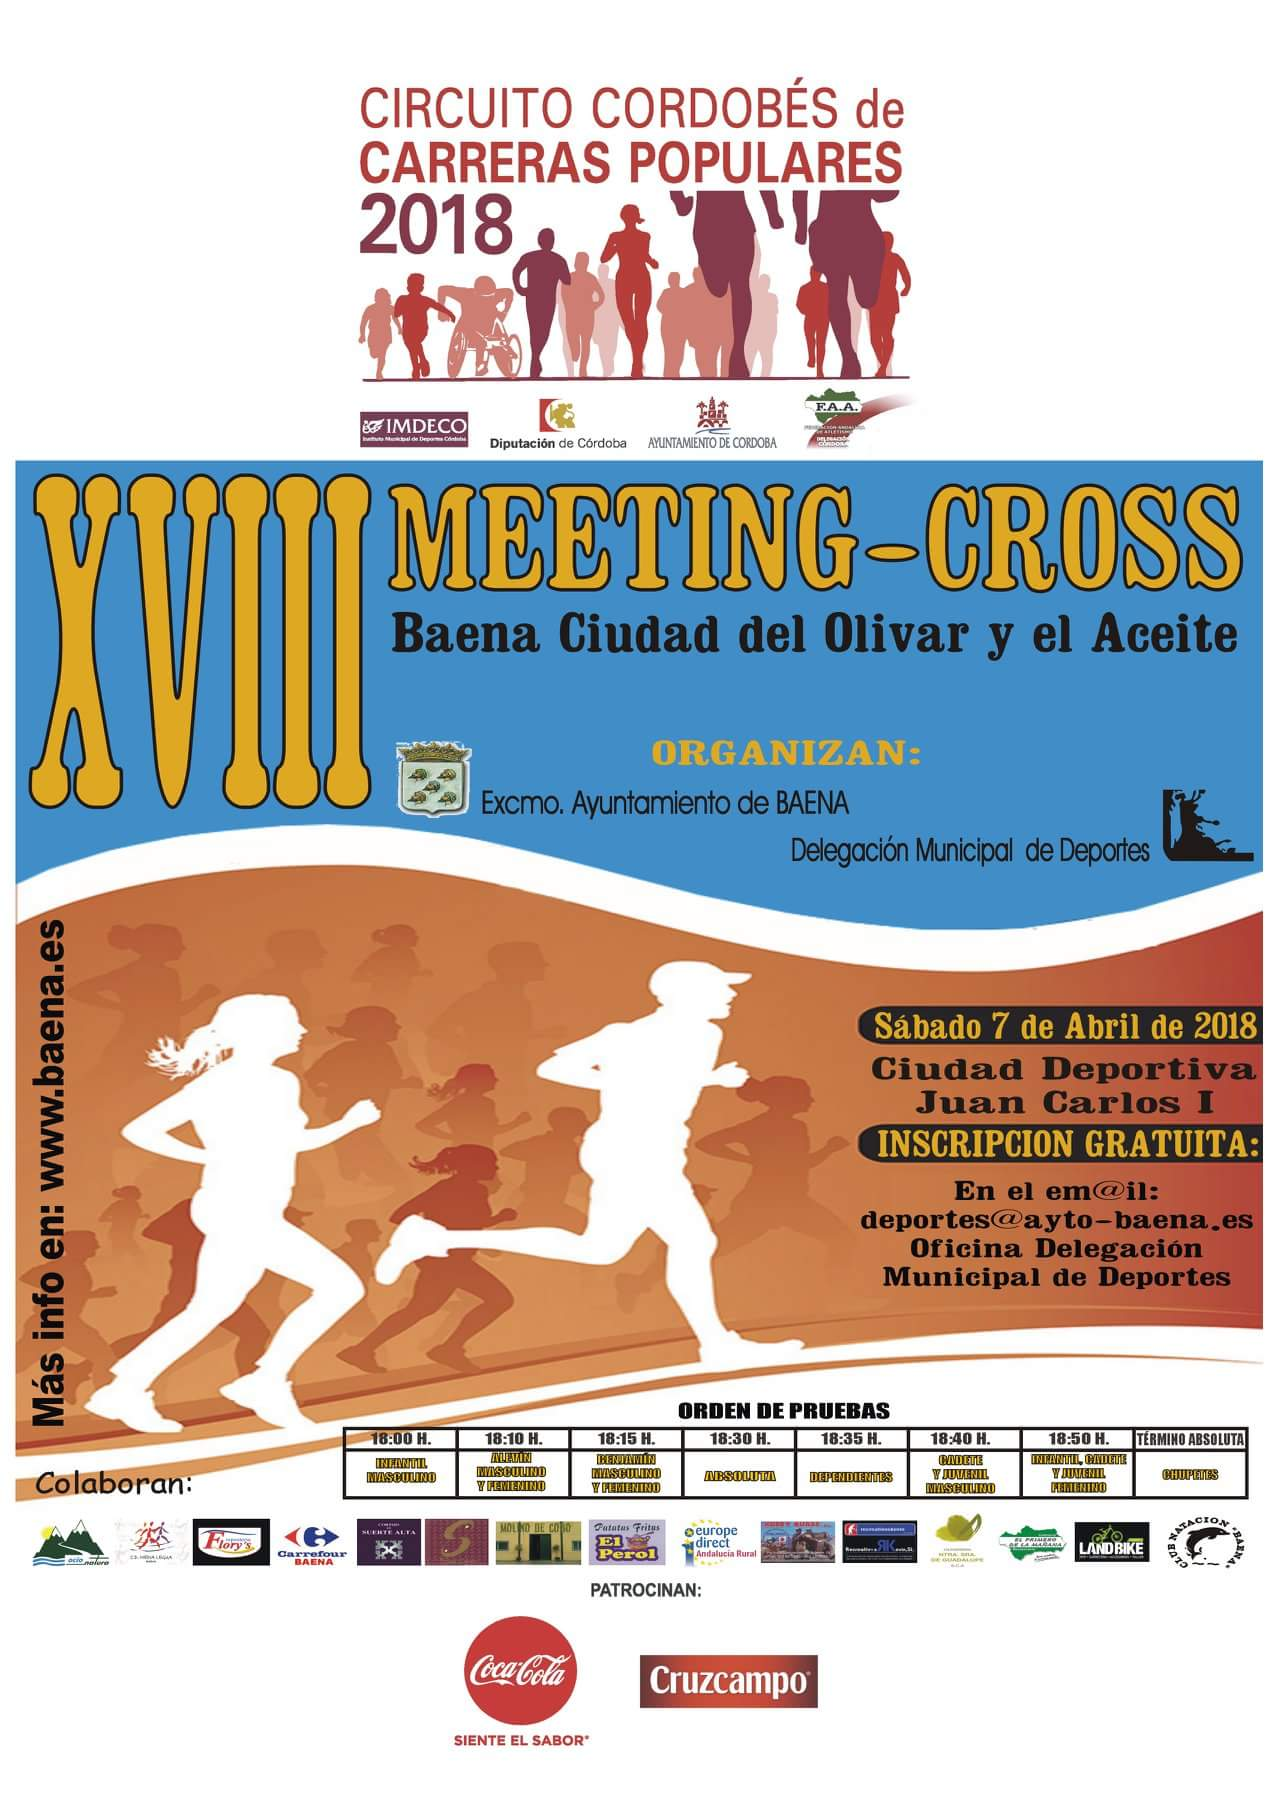 XVIII MEETING-CROSS DE BAENA